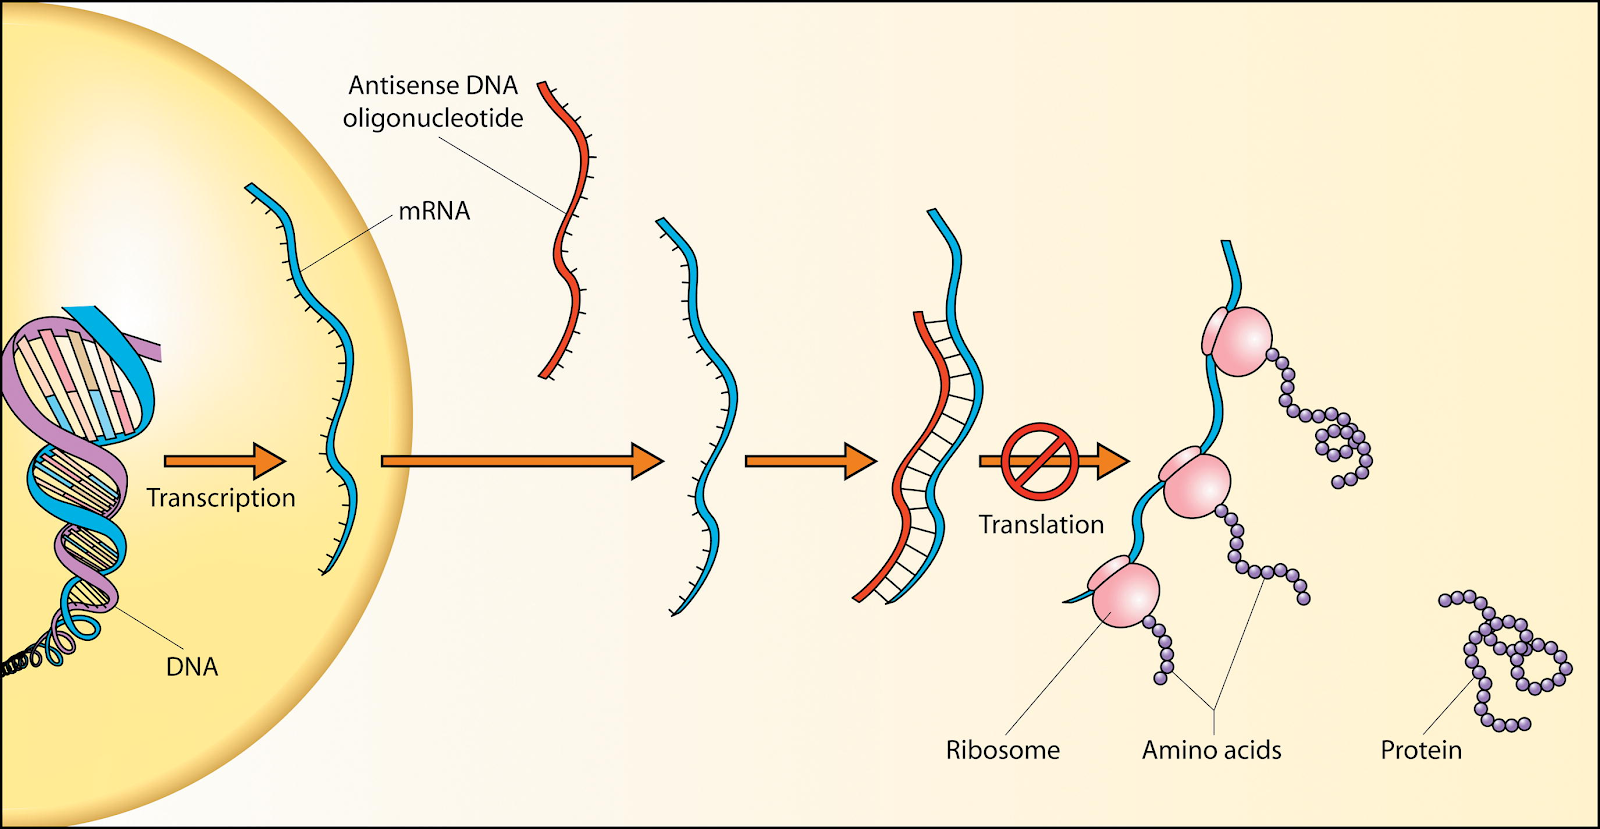 Genetic Interceptions Rna Therapy Antisense Oligonucleotides And How They Are The Future For Huntington S Disease Treatment Hippocrates Med Review